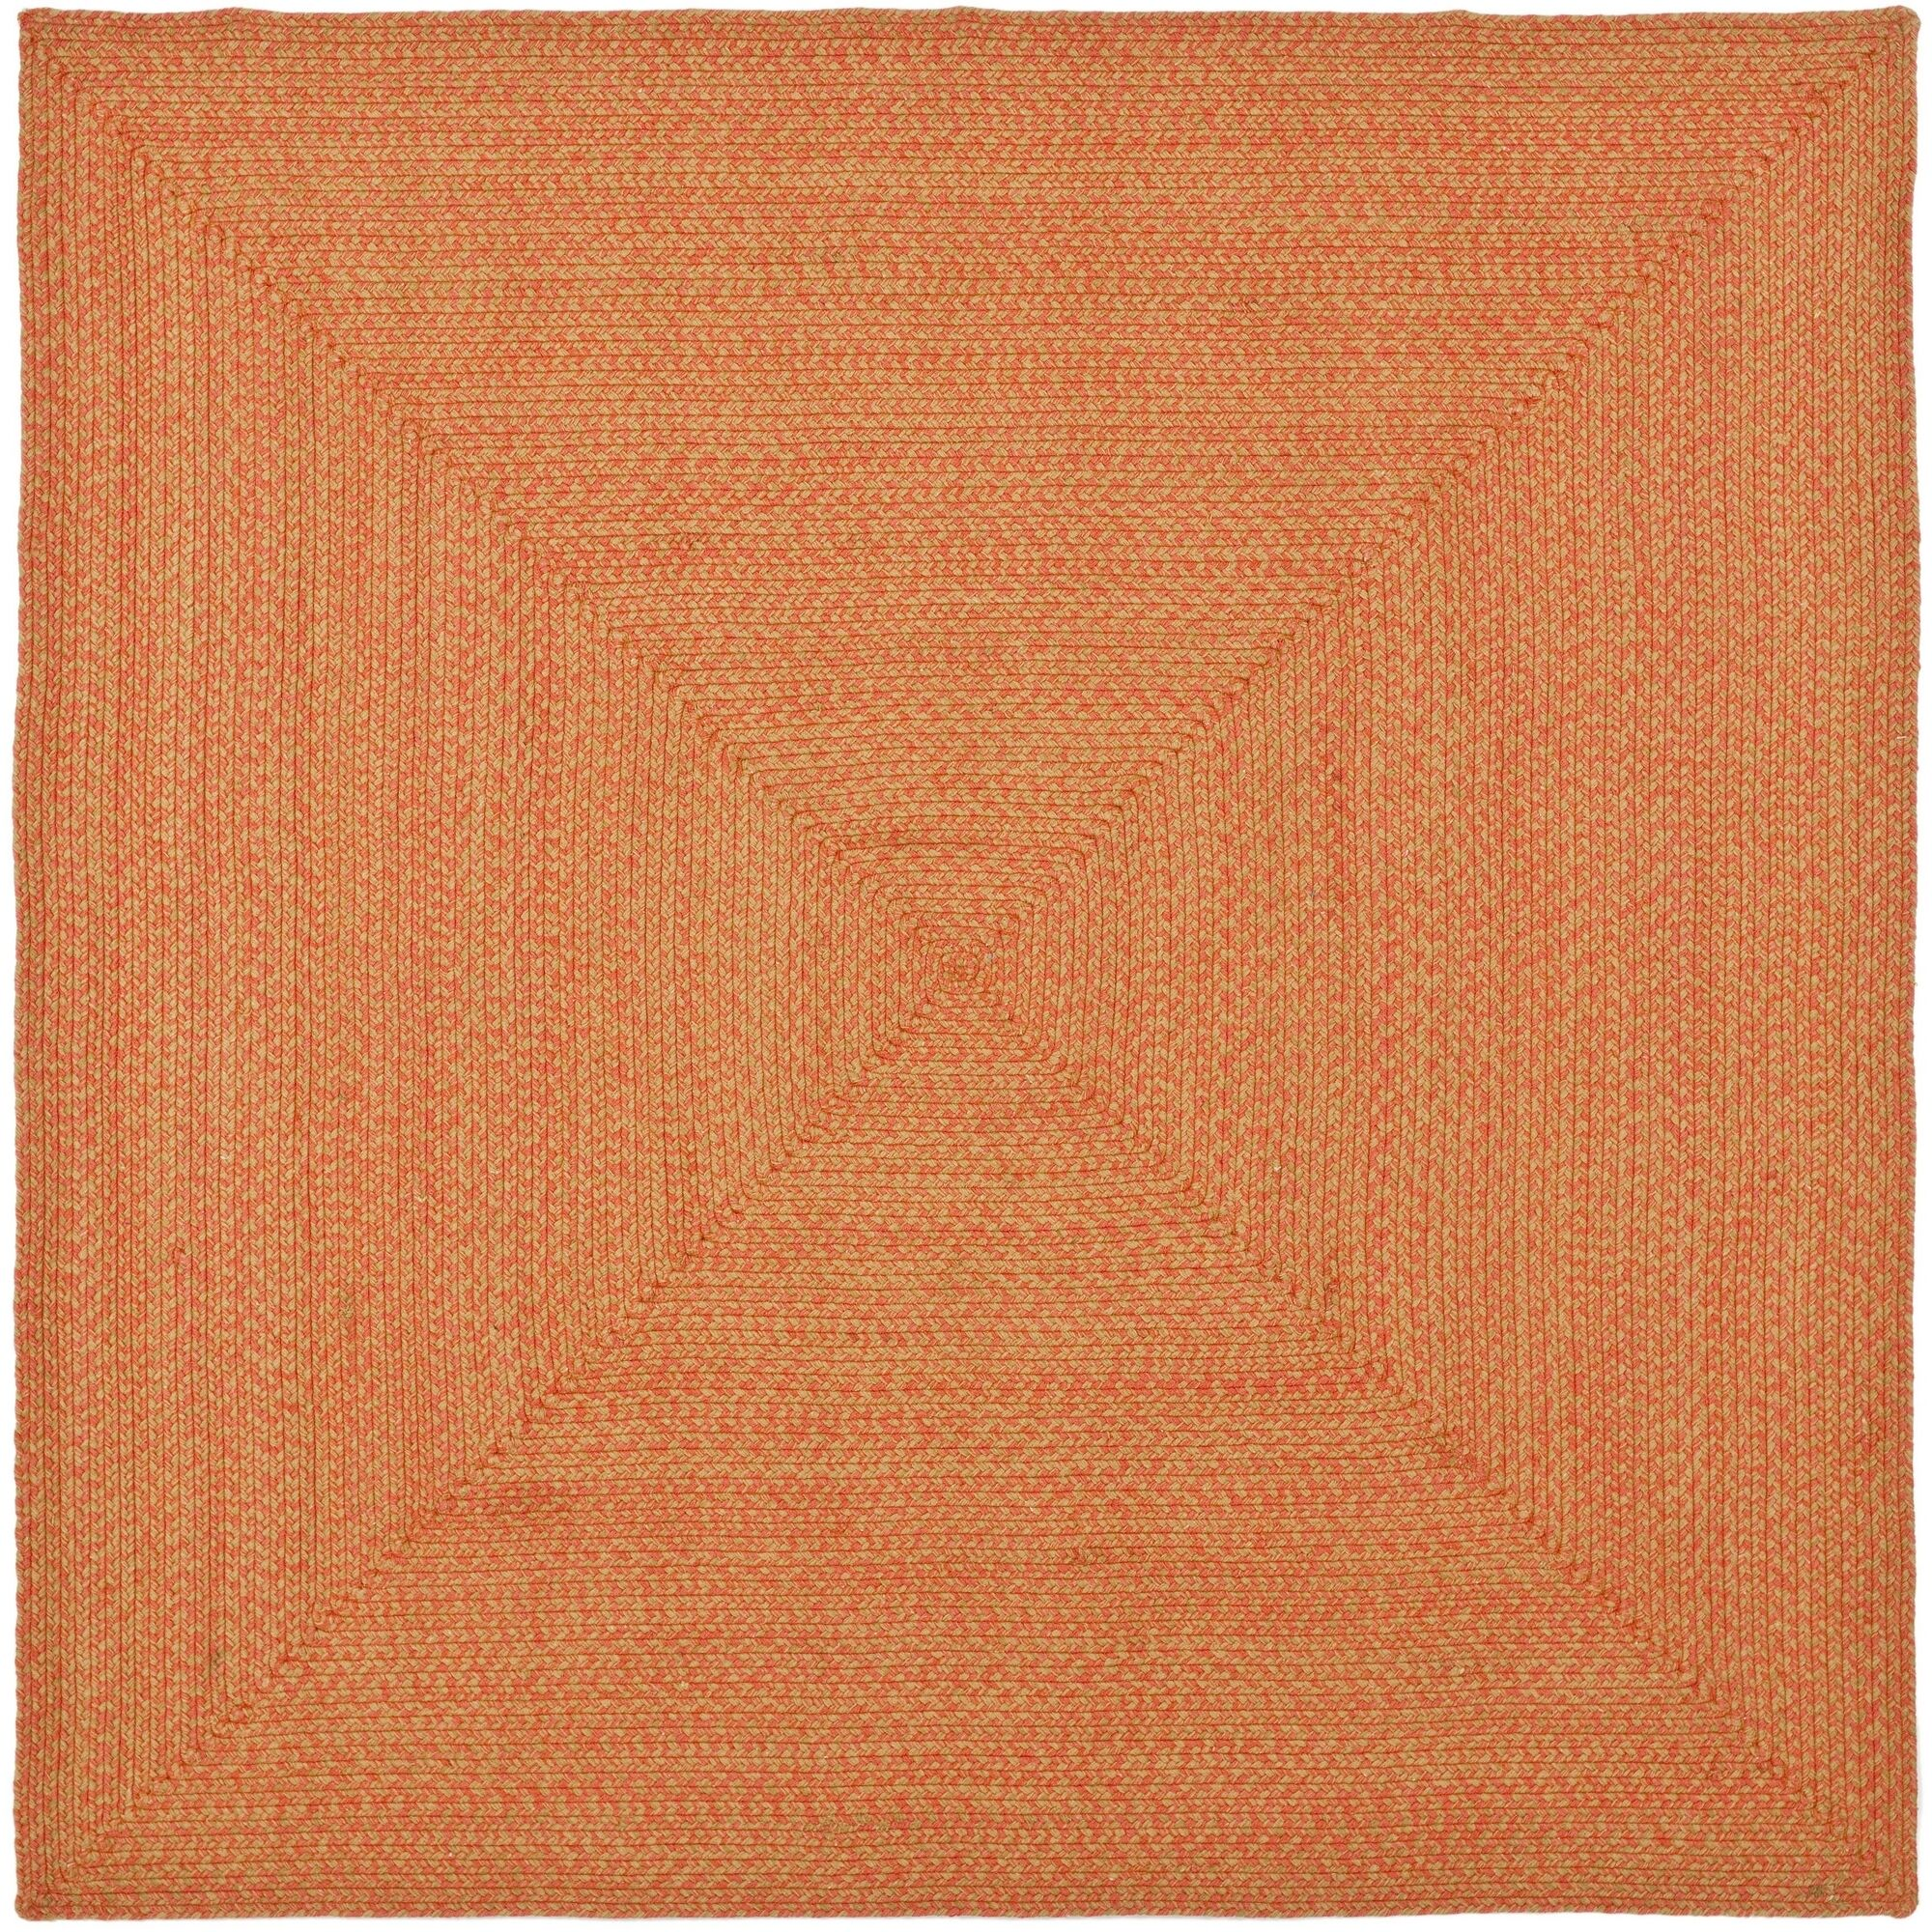 Lissie Beige/Multi Area Rug Rug Size: Square 6'